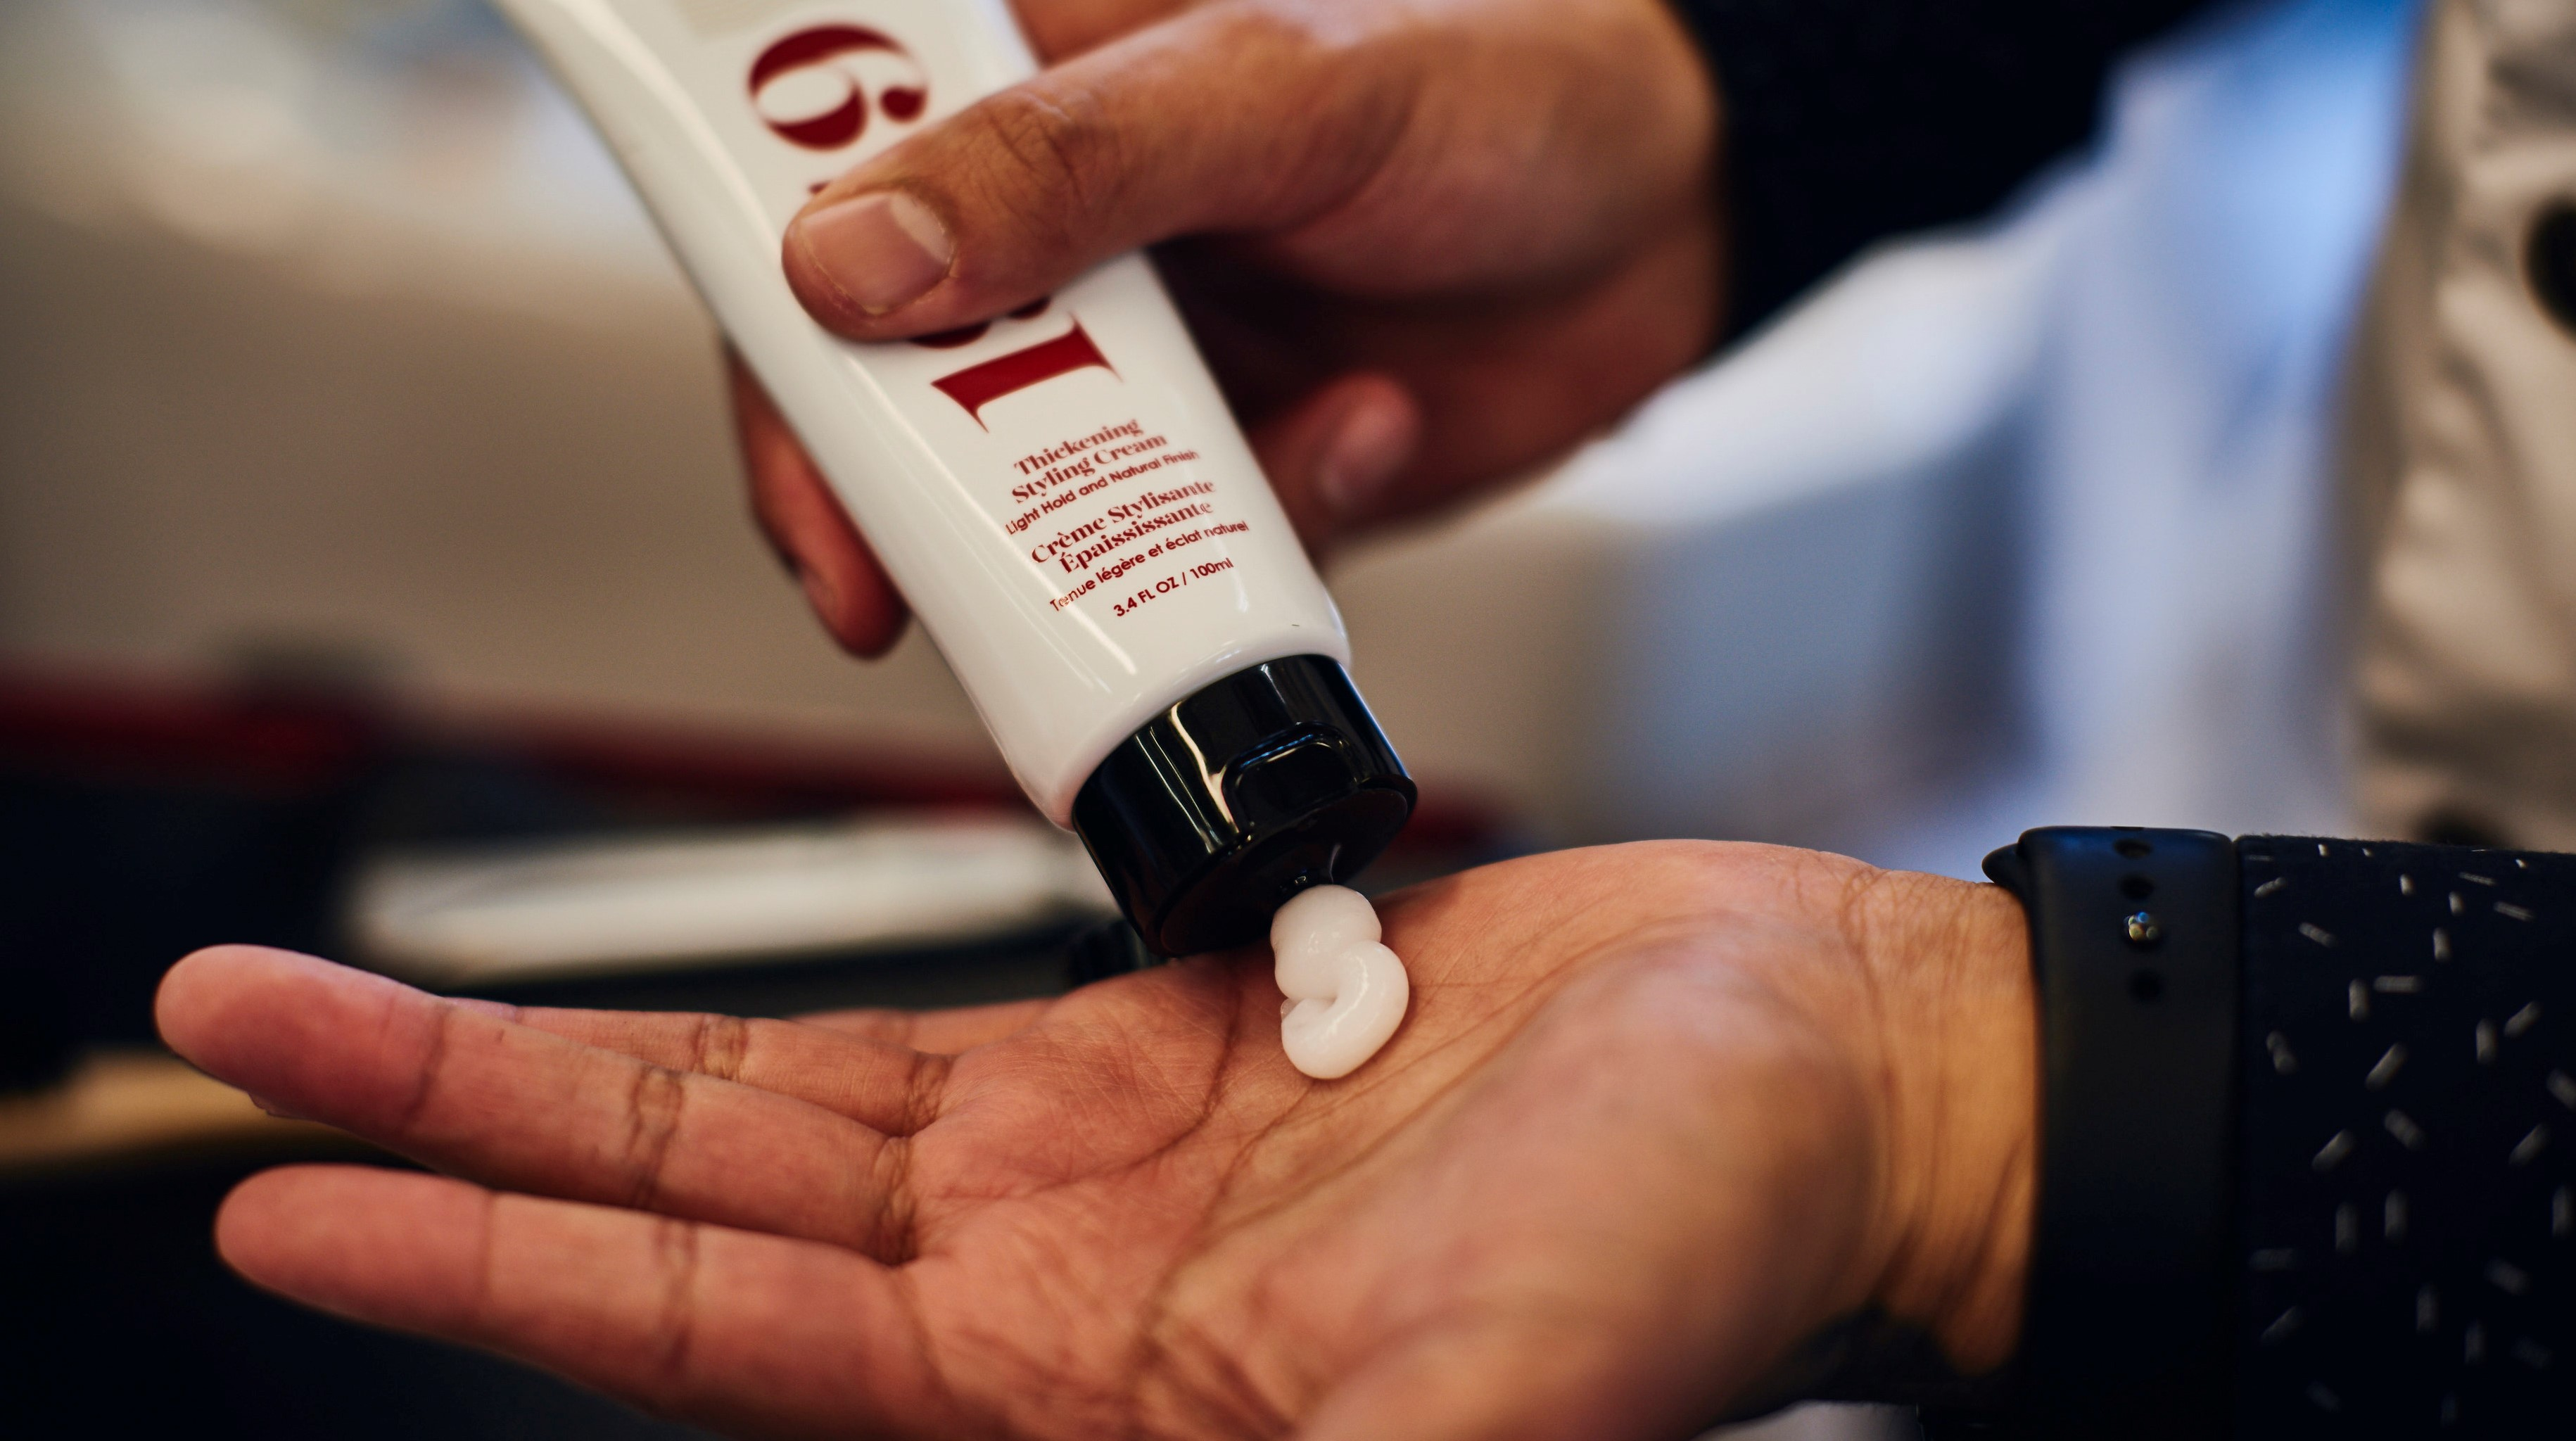 Wahl Contributing 50% of Wahl 1919 Purchases to COVID-19 Relief